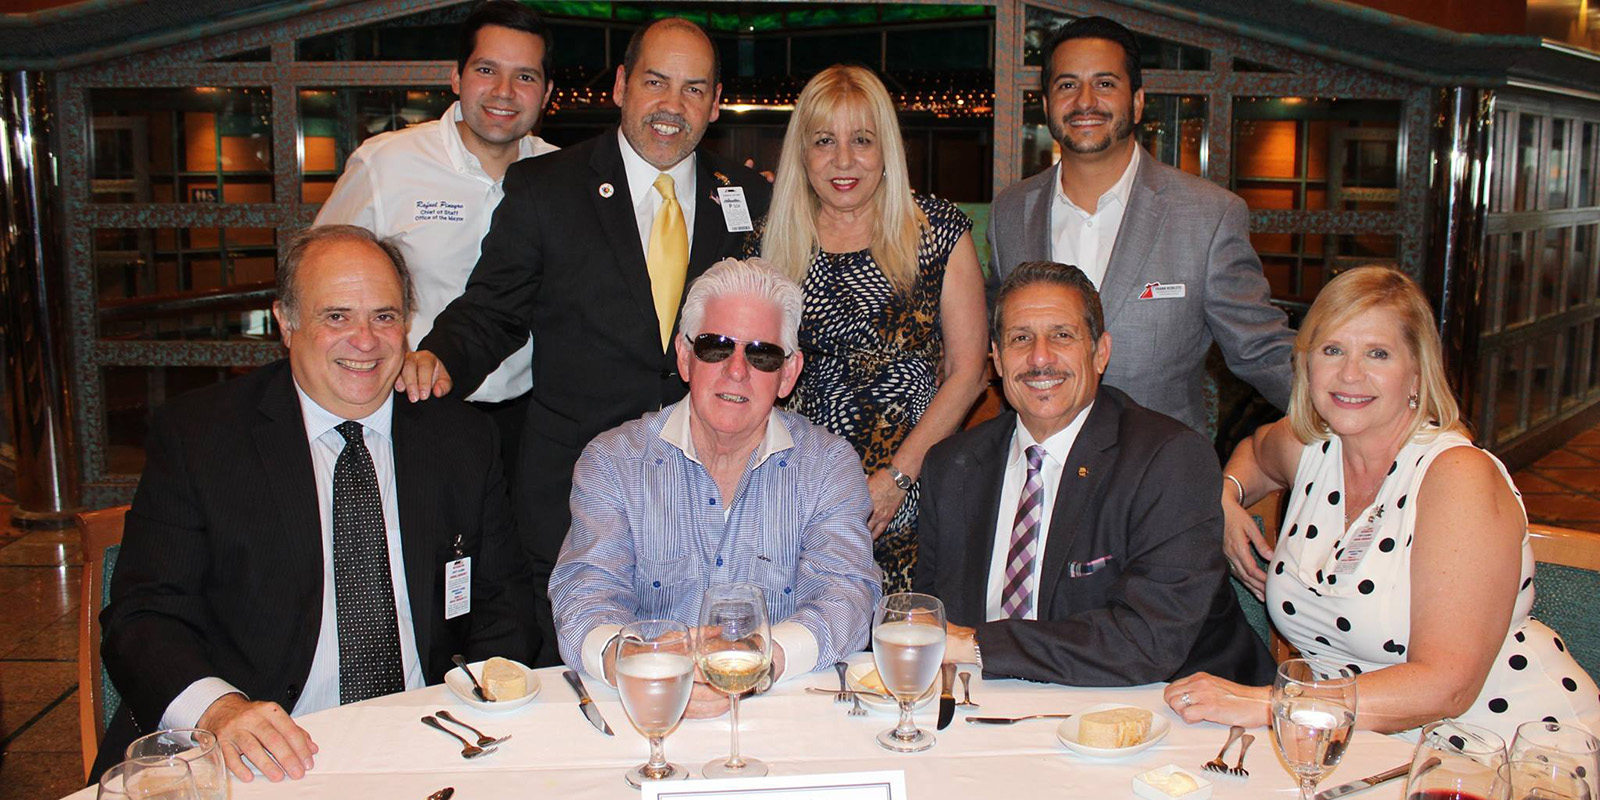 Carnival Cruise Luncheon, a Doral Chamber of Commerce event.